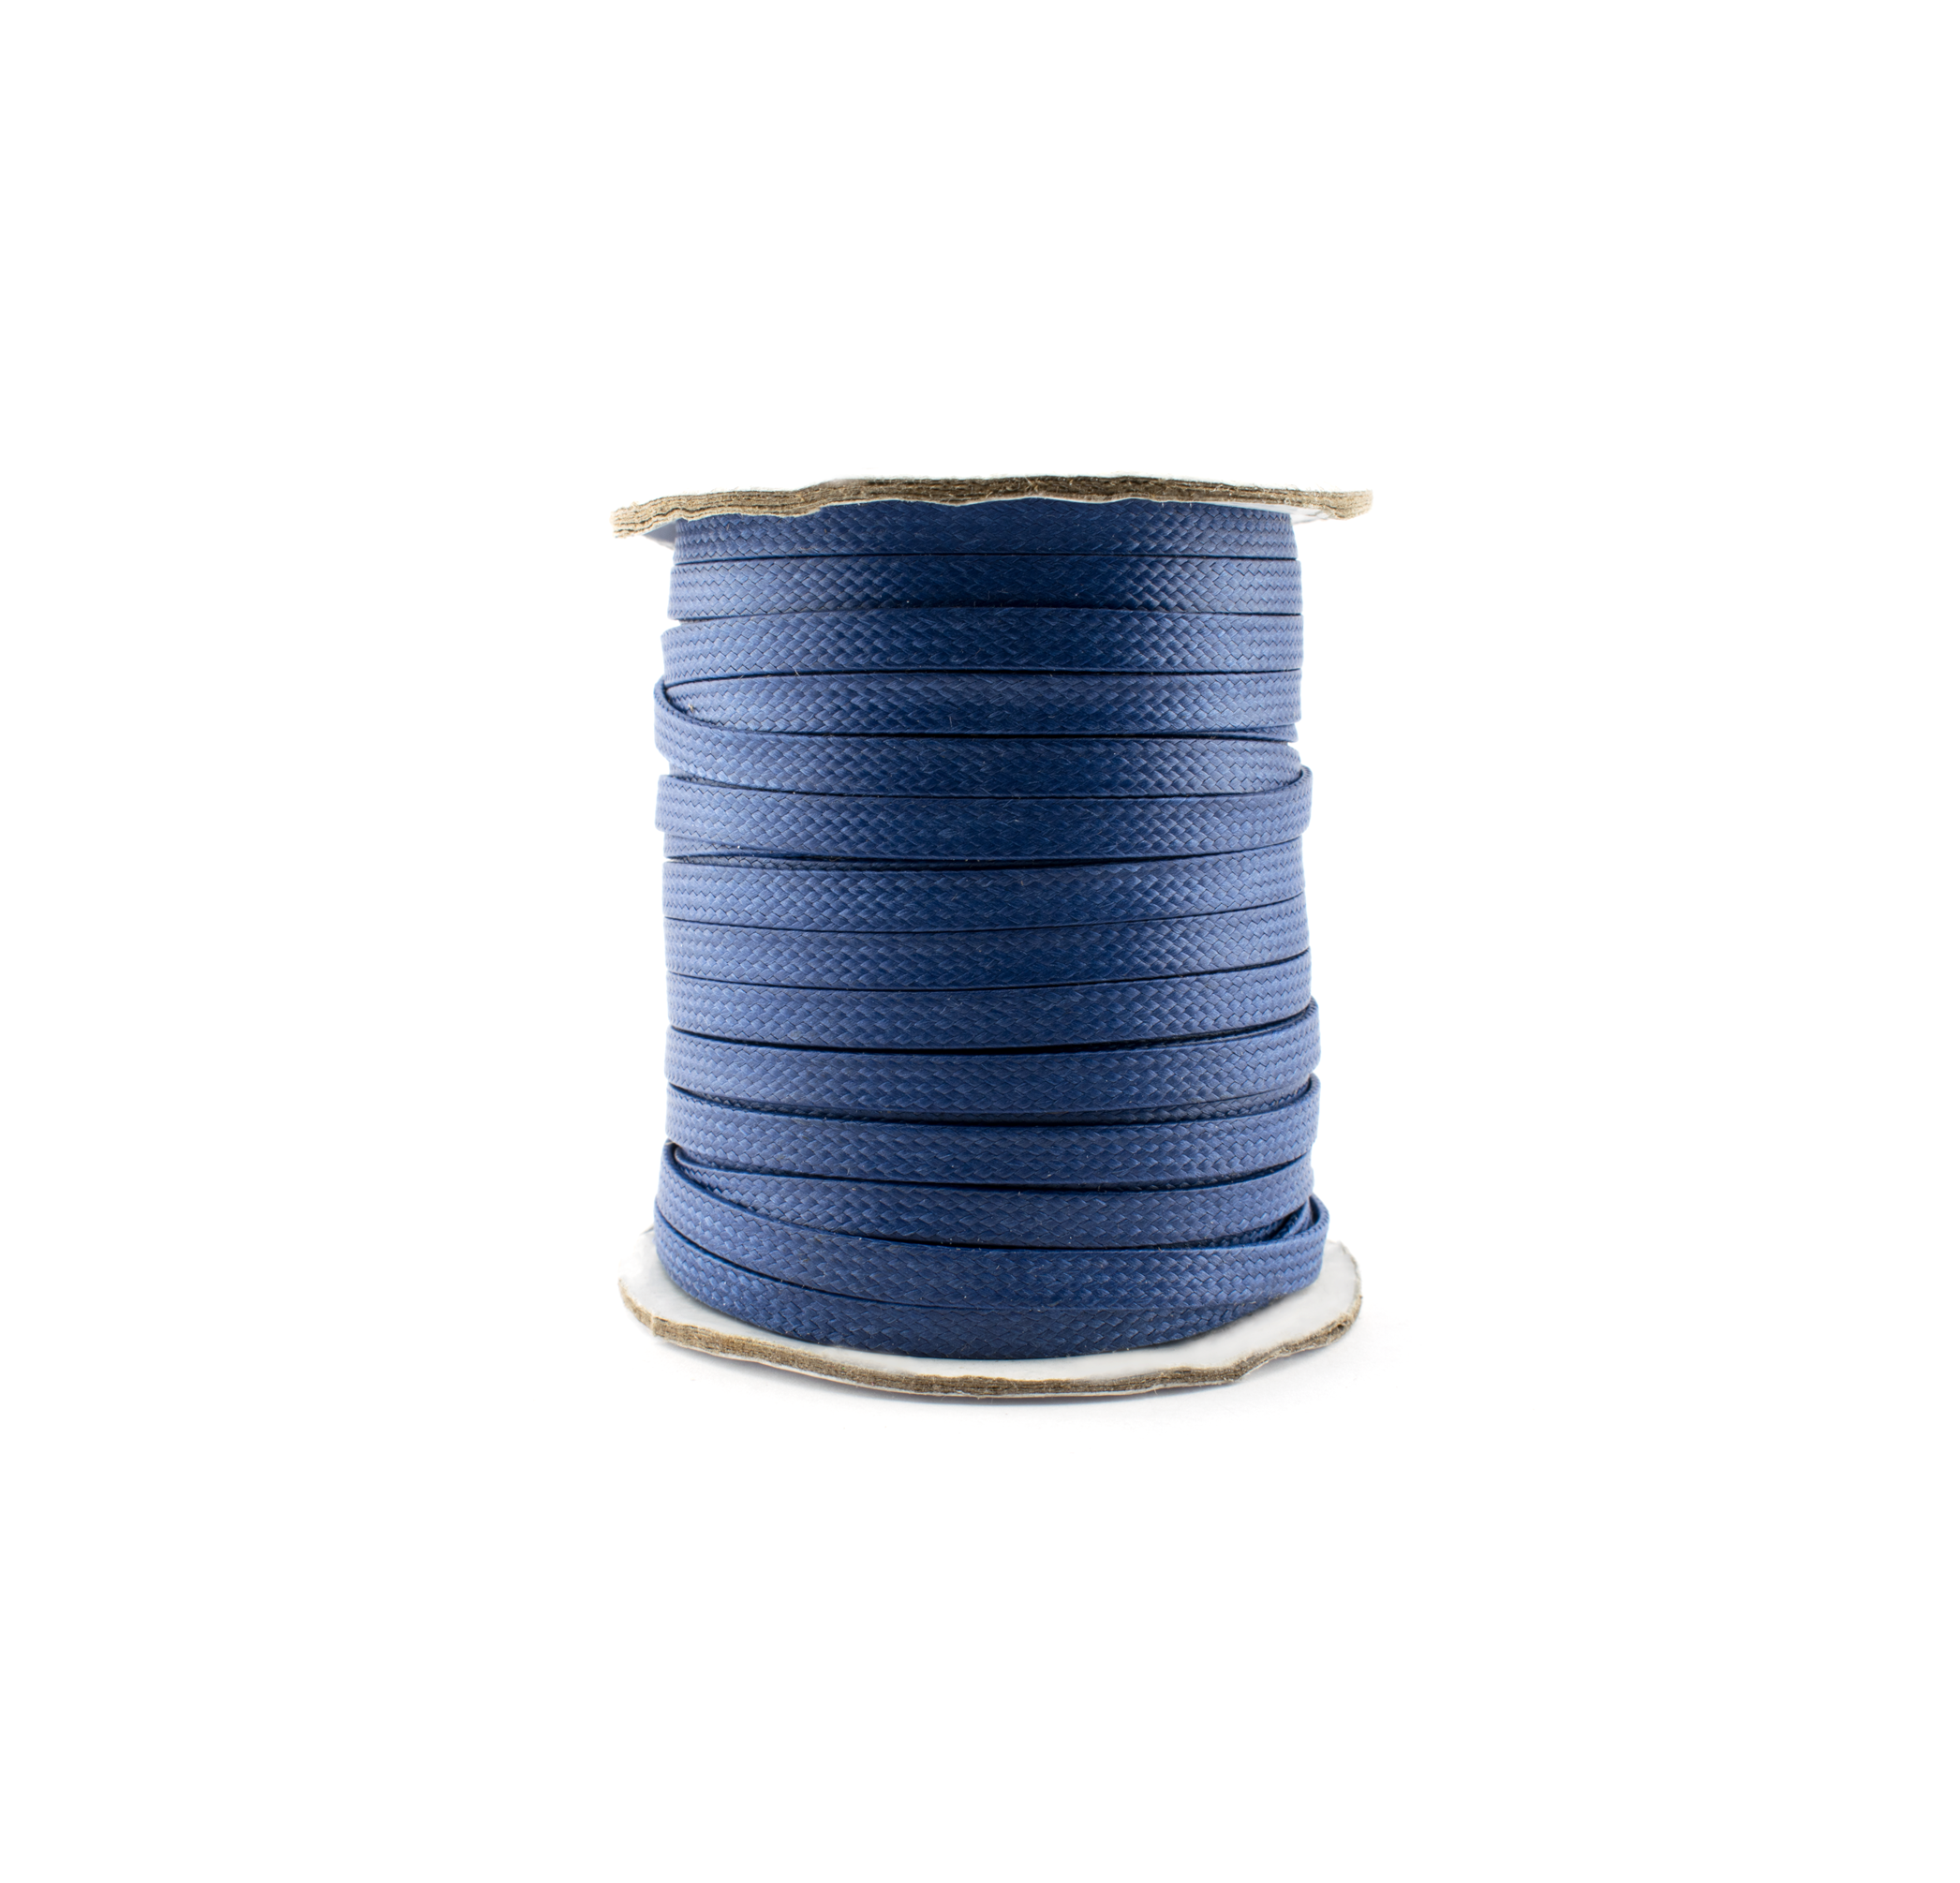 SYNTHETIC CORD SNAKE STYLE 4mm